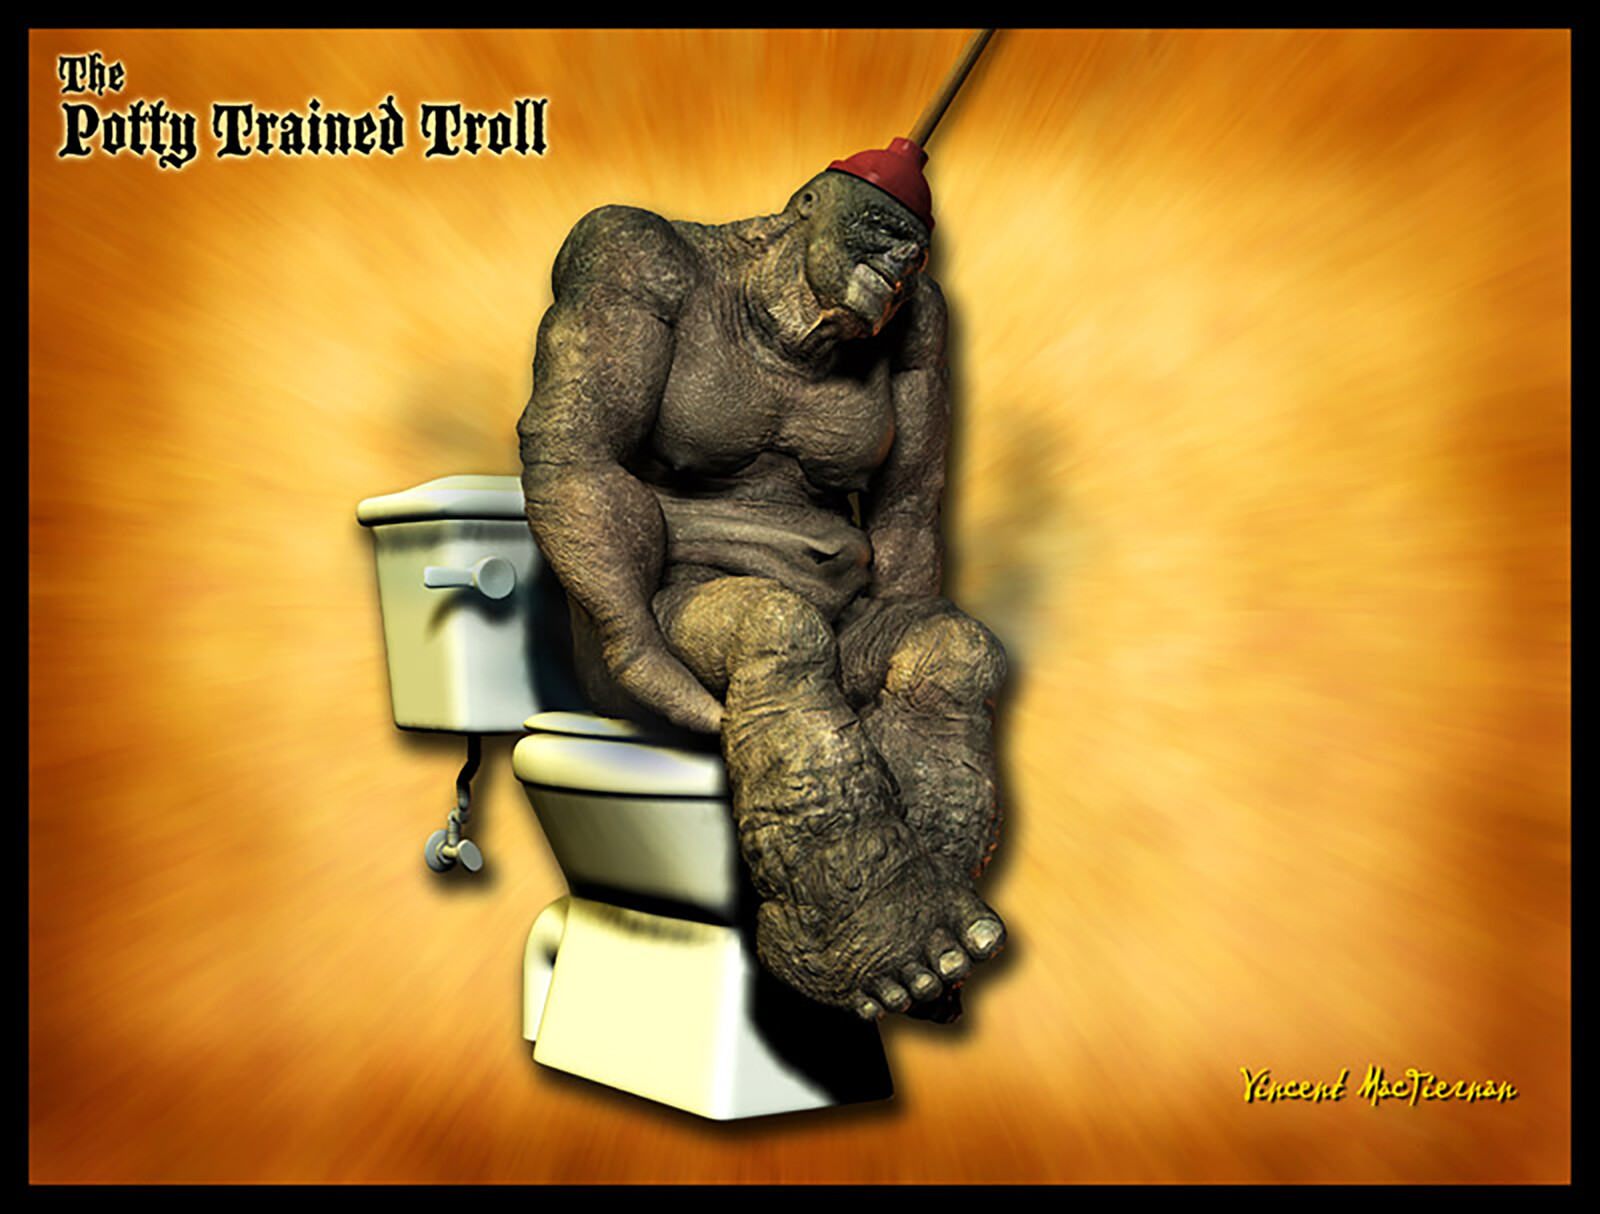 The Potty Trained Troll